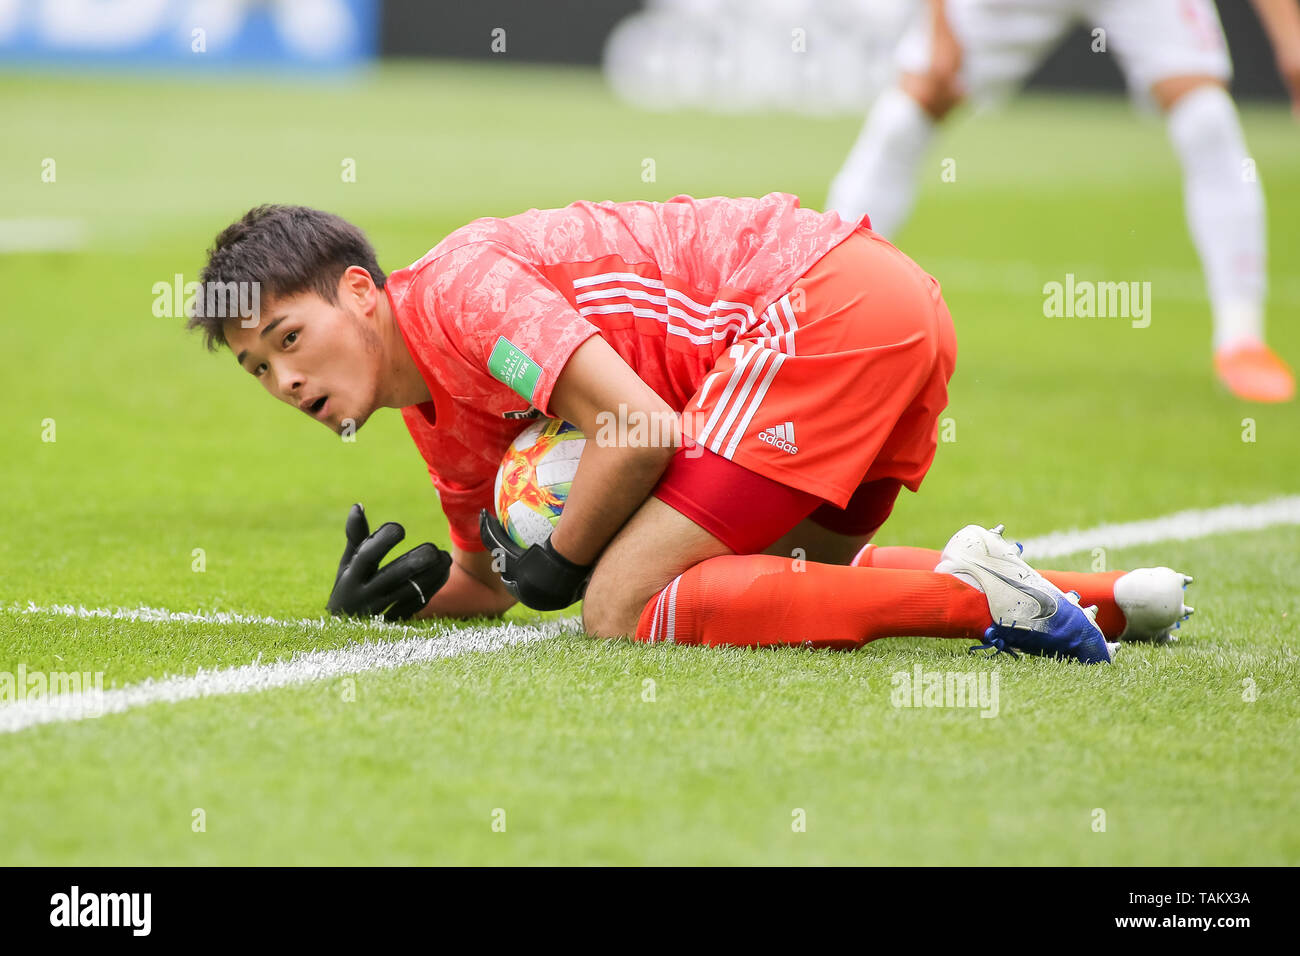 Gdynia Stadium, Gdynia, Poland - 26th May, 2019: Tomoya Wakahara from Japan seen in action during FIFA U-20 World Cup match between Mexico and Japan (GROUP B) in Gdynia. (Final score; Mexico 0:3 Japan) - Stock Image